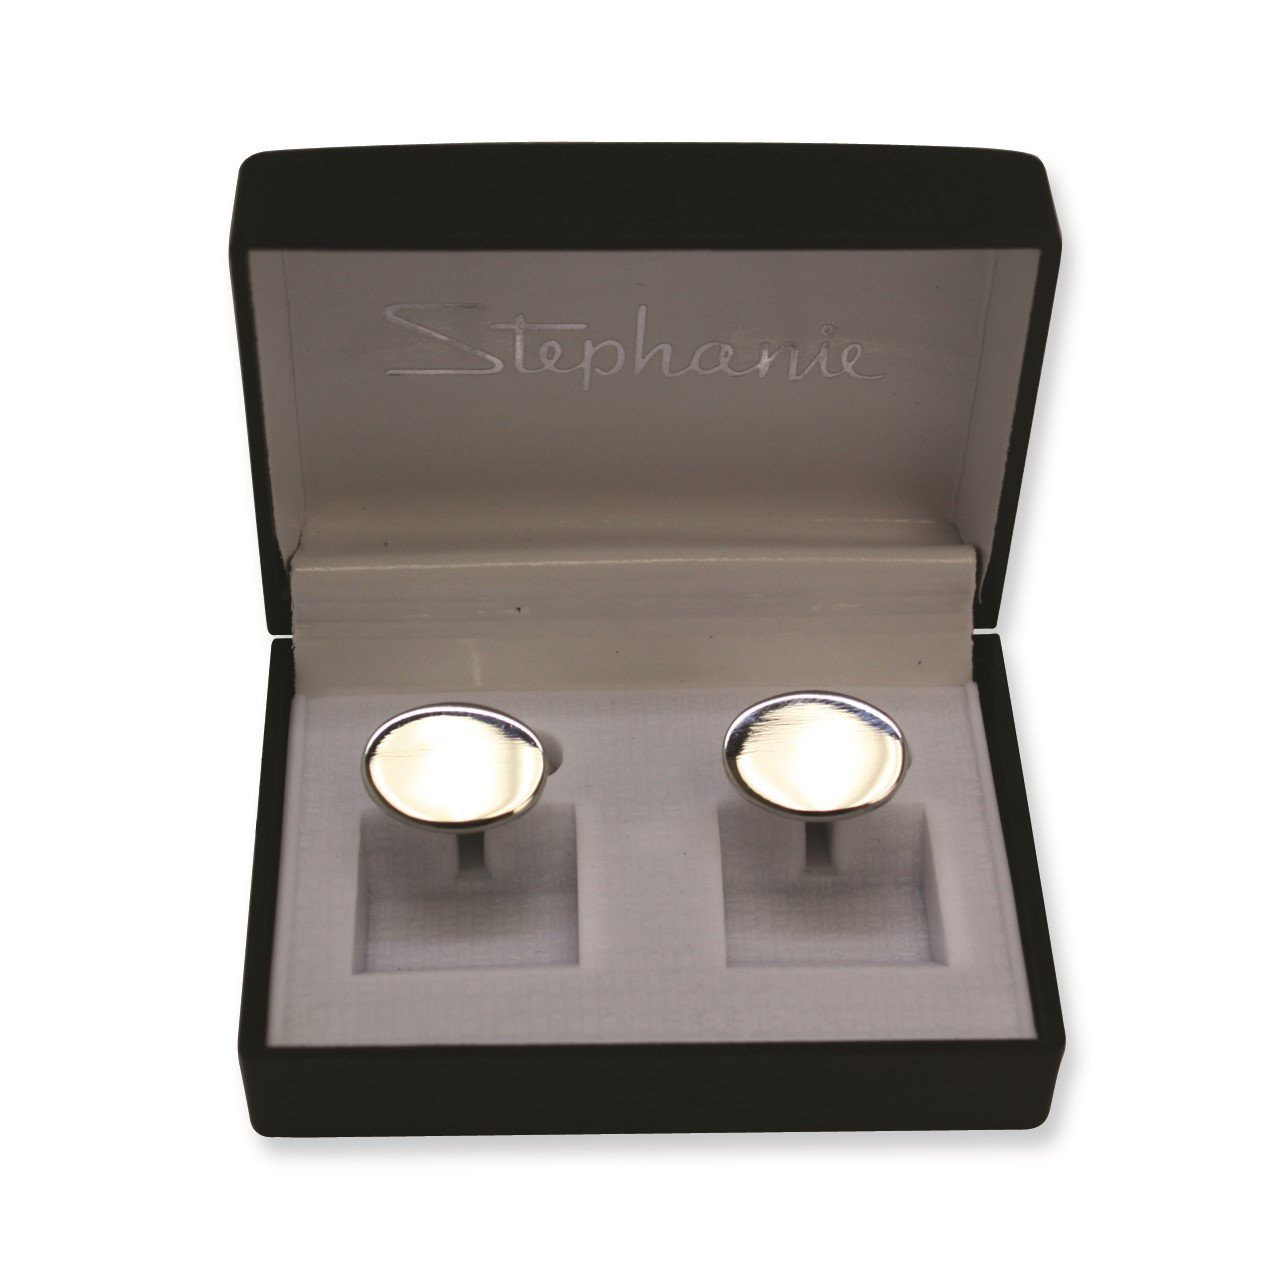 Silver-tone Polished Oval Cuff Links